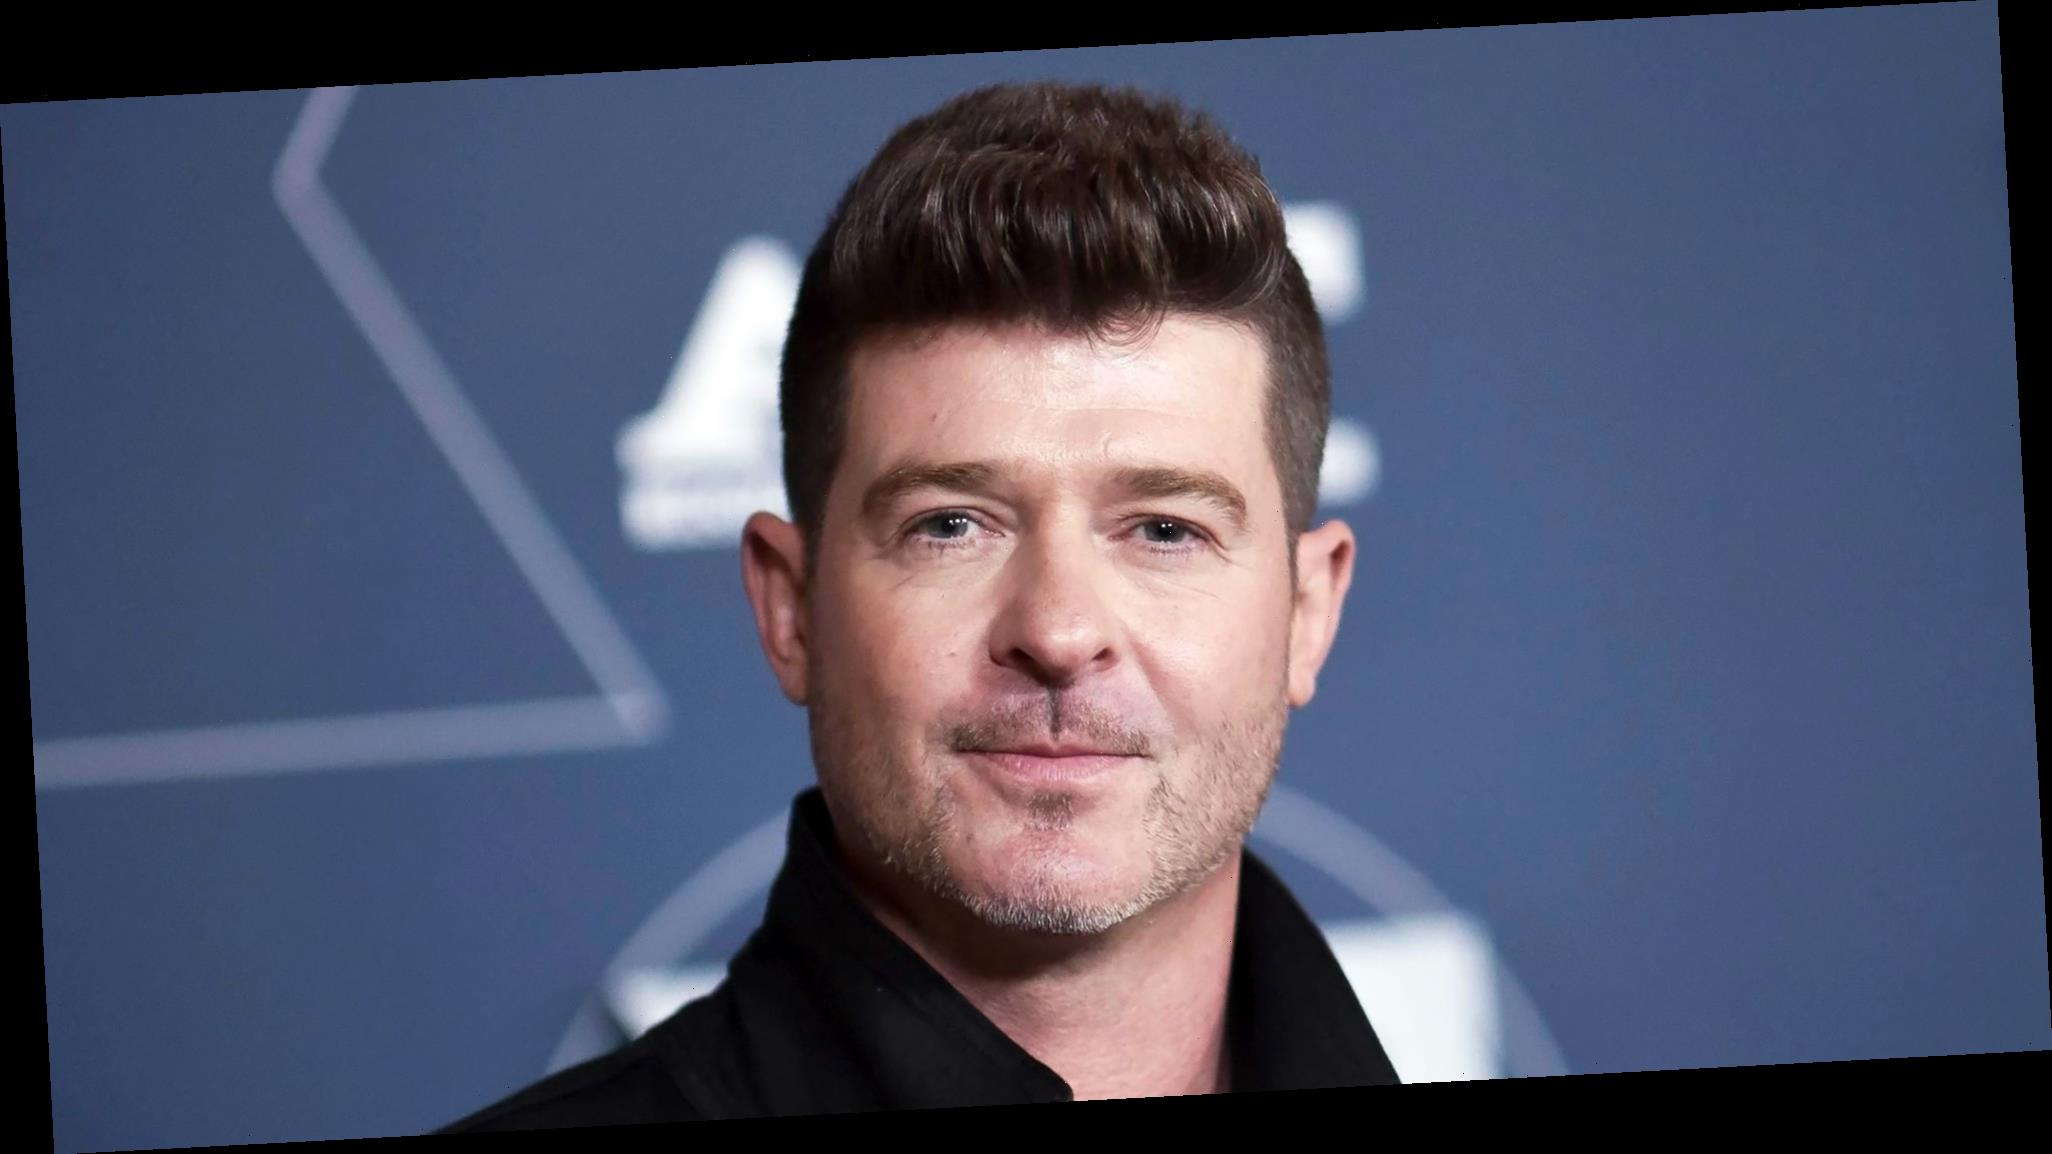 Robin Thicke: I Go to Therapy With My Fiancee and Ex-Wife